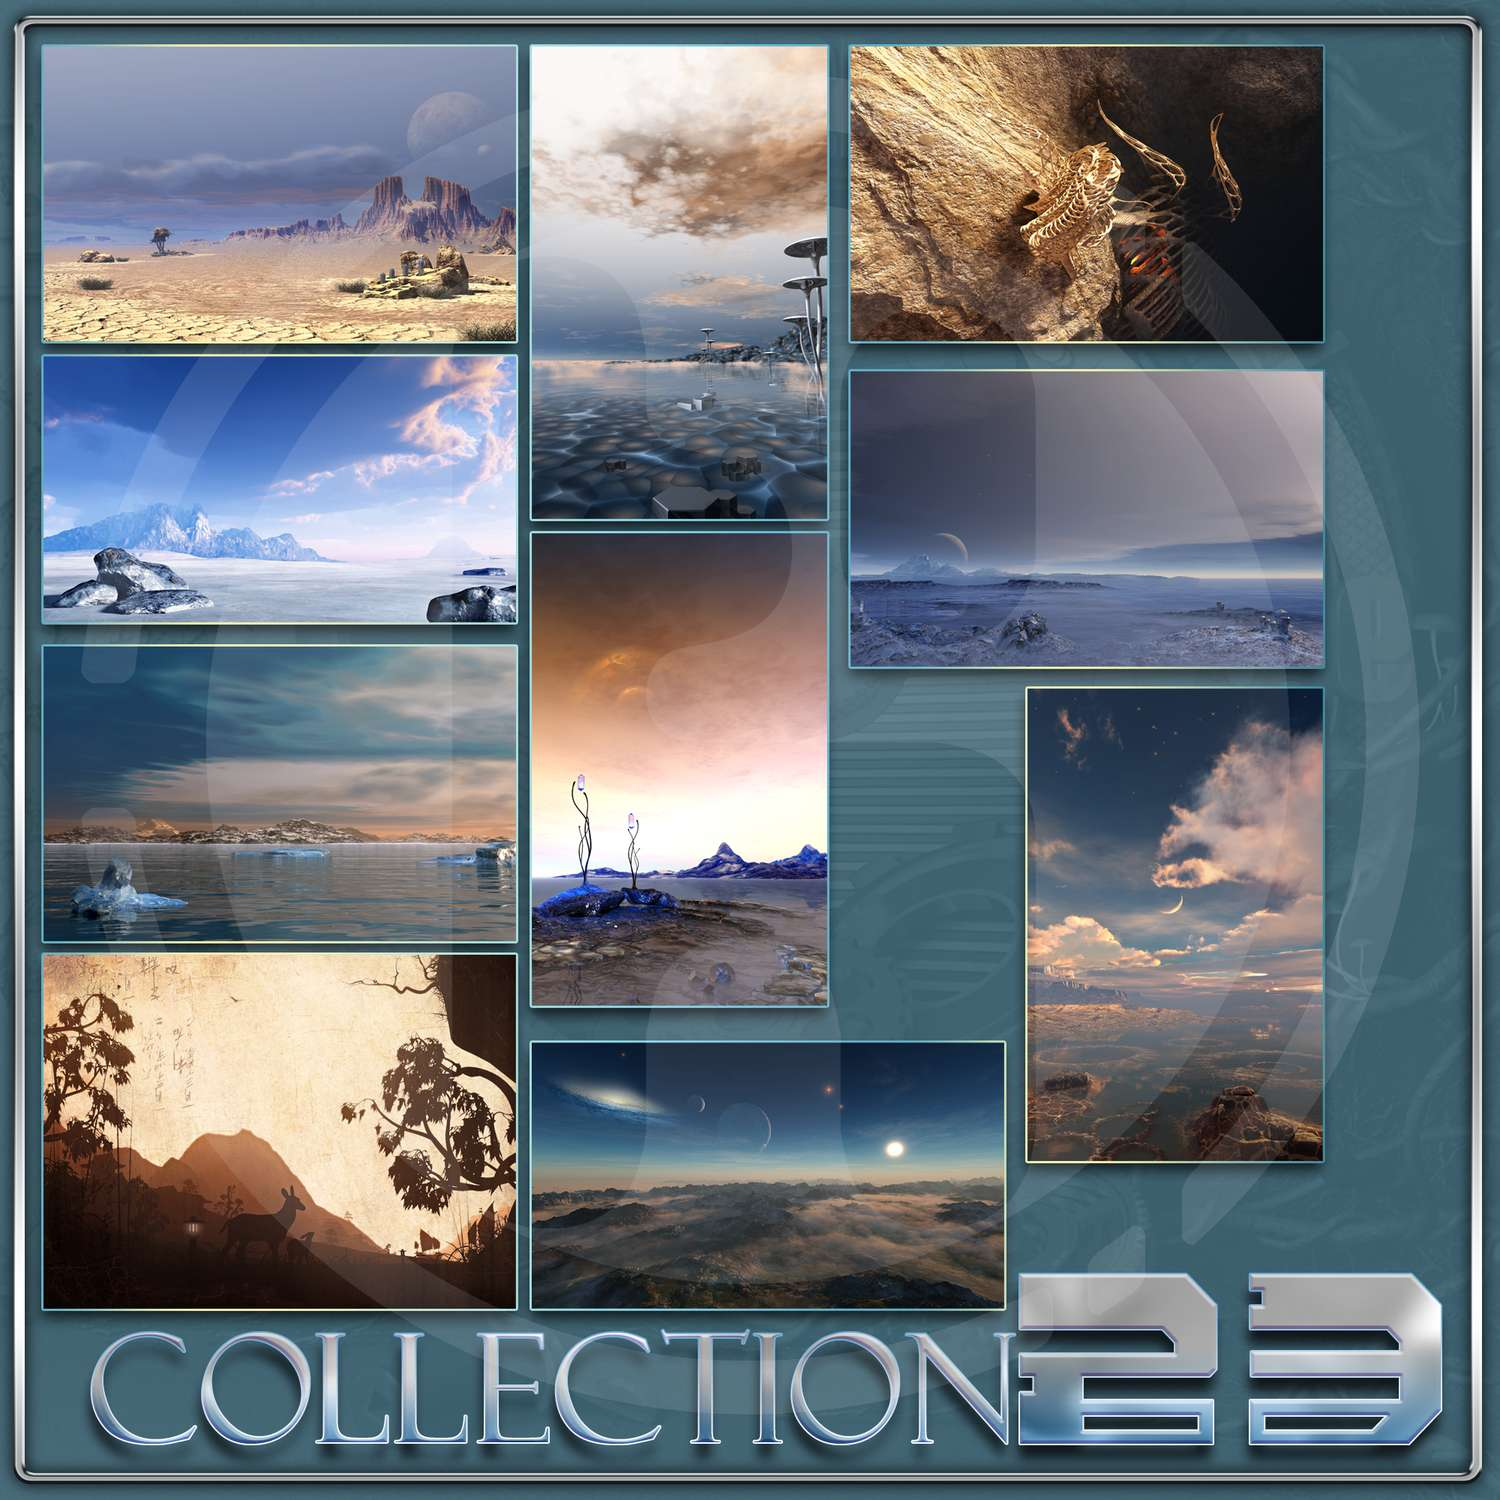 Collection_23